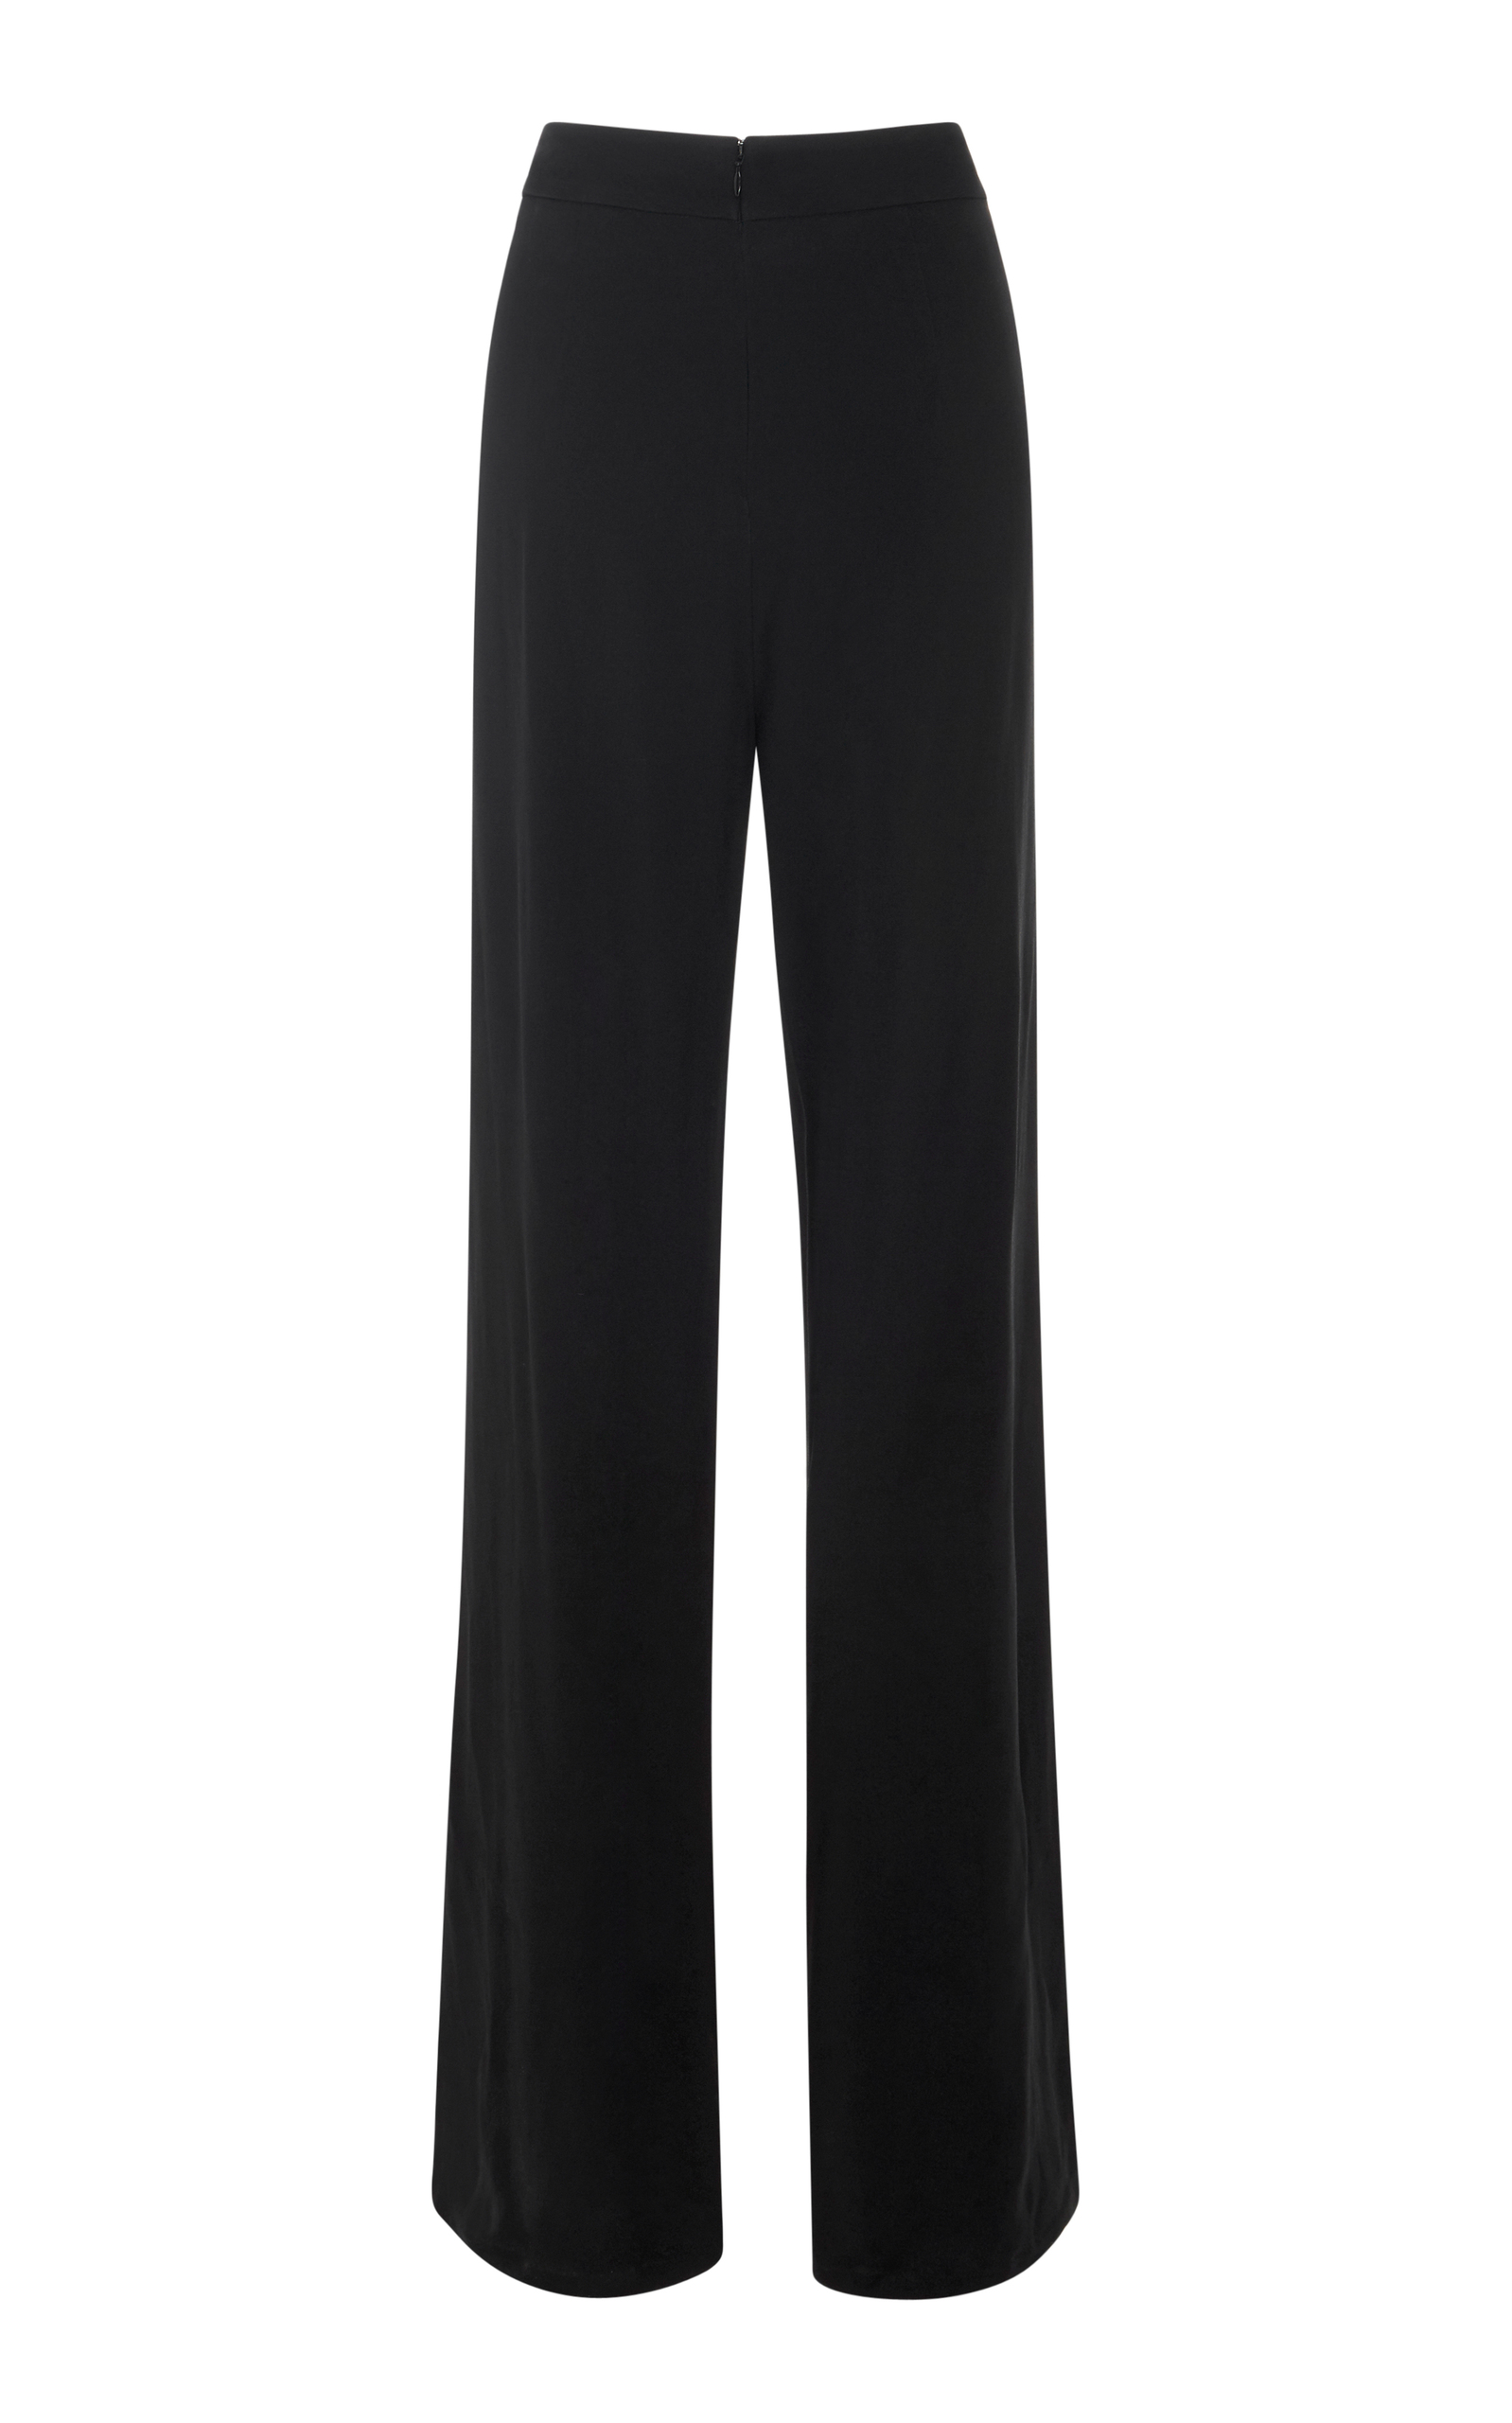 grosgrain seamed trousers - Black Natori Clearance Clearance Store Extremely Sale Online D9ccHhu3